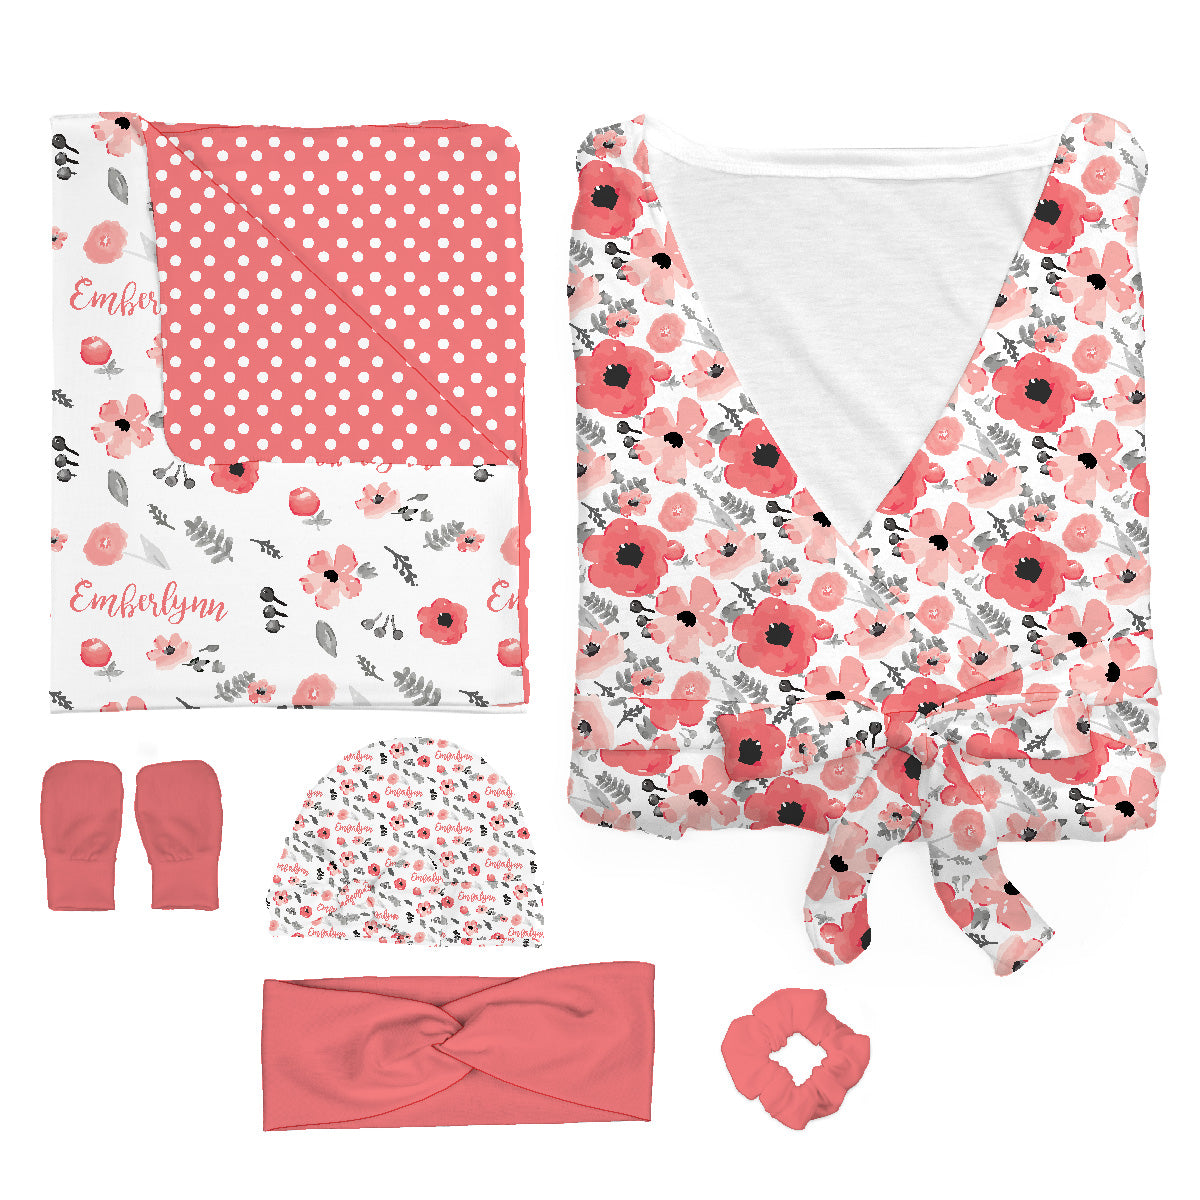 Emberlynn's Mountain Floral | Mommy and Me Bundle